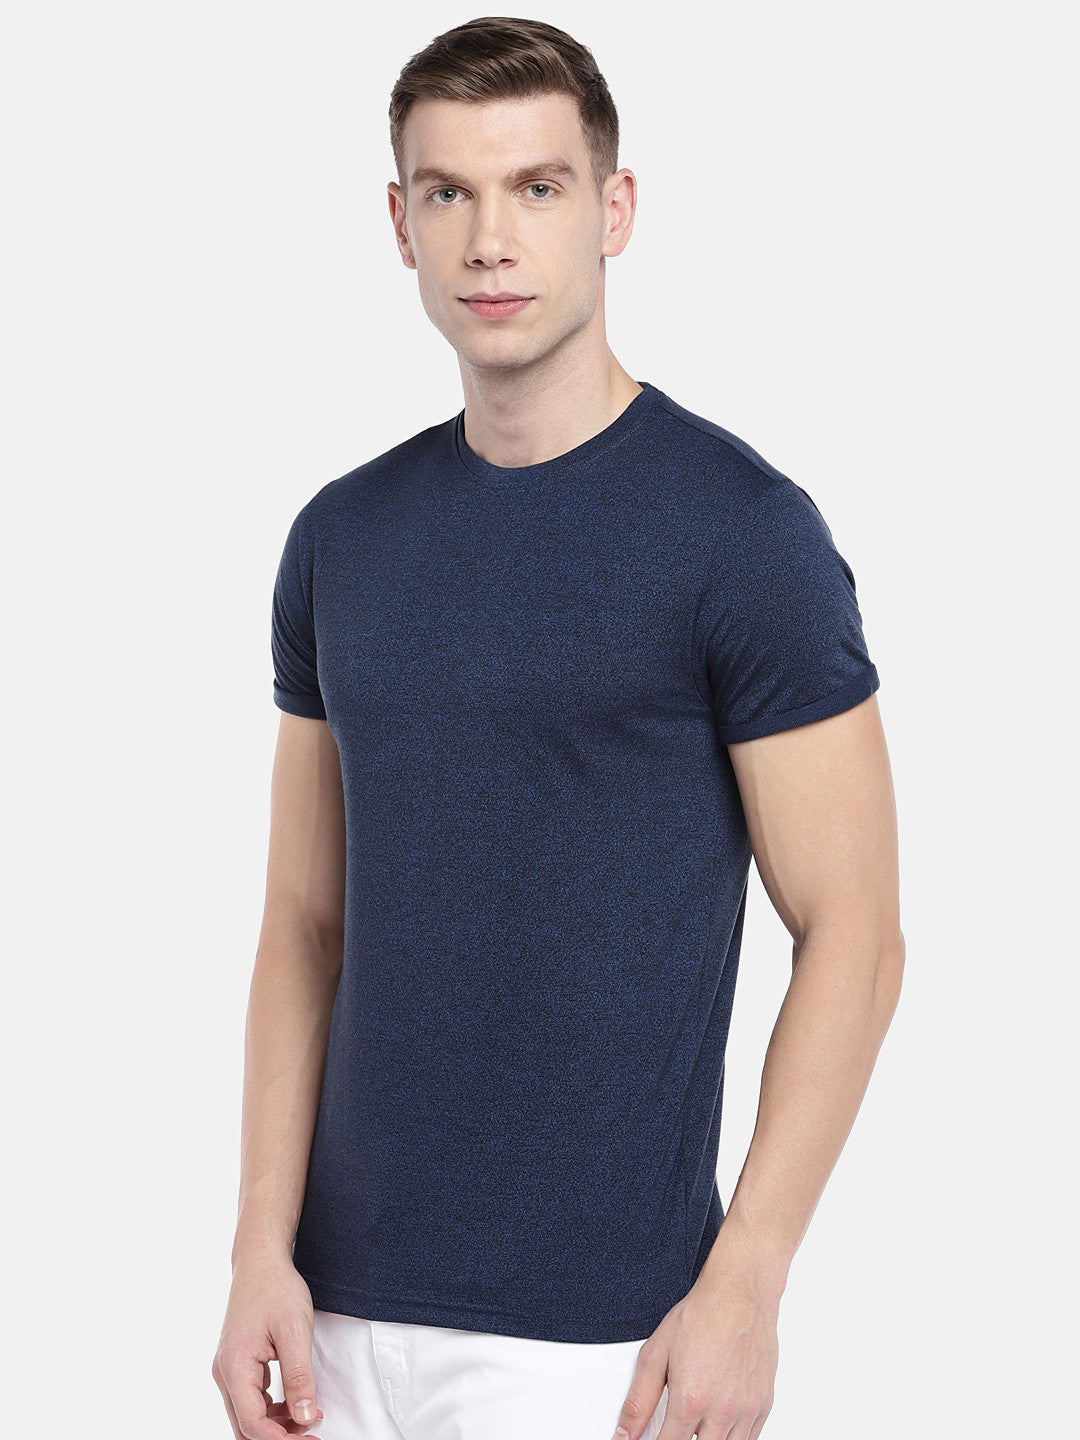 Navy Blue Solid Round Neck T-shirt-2